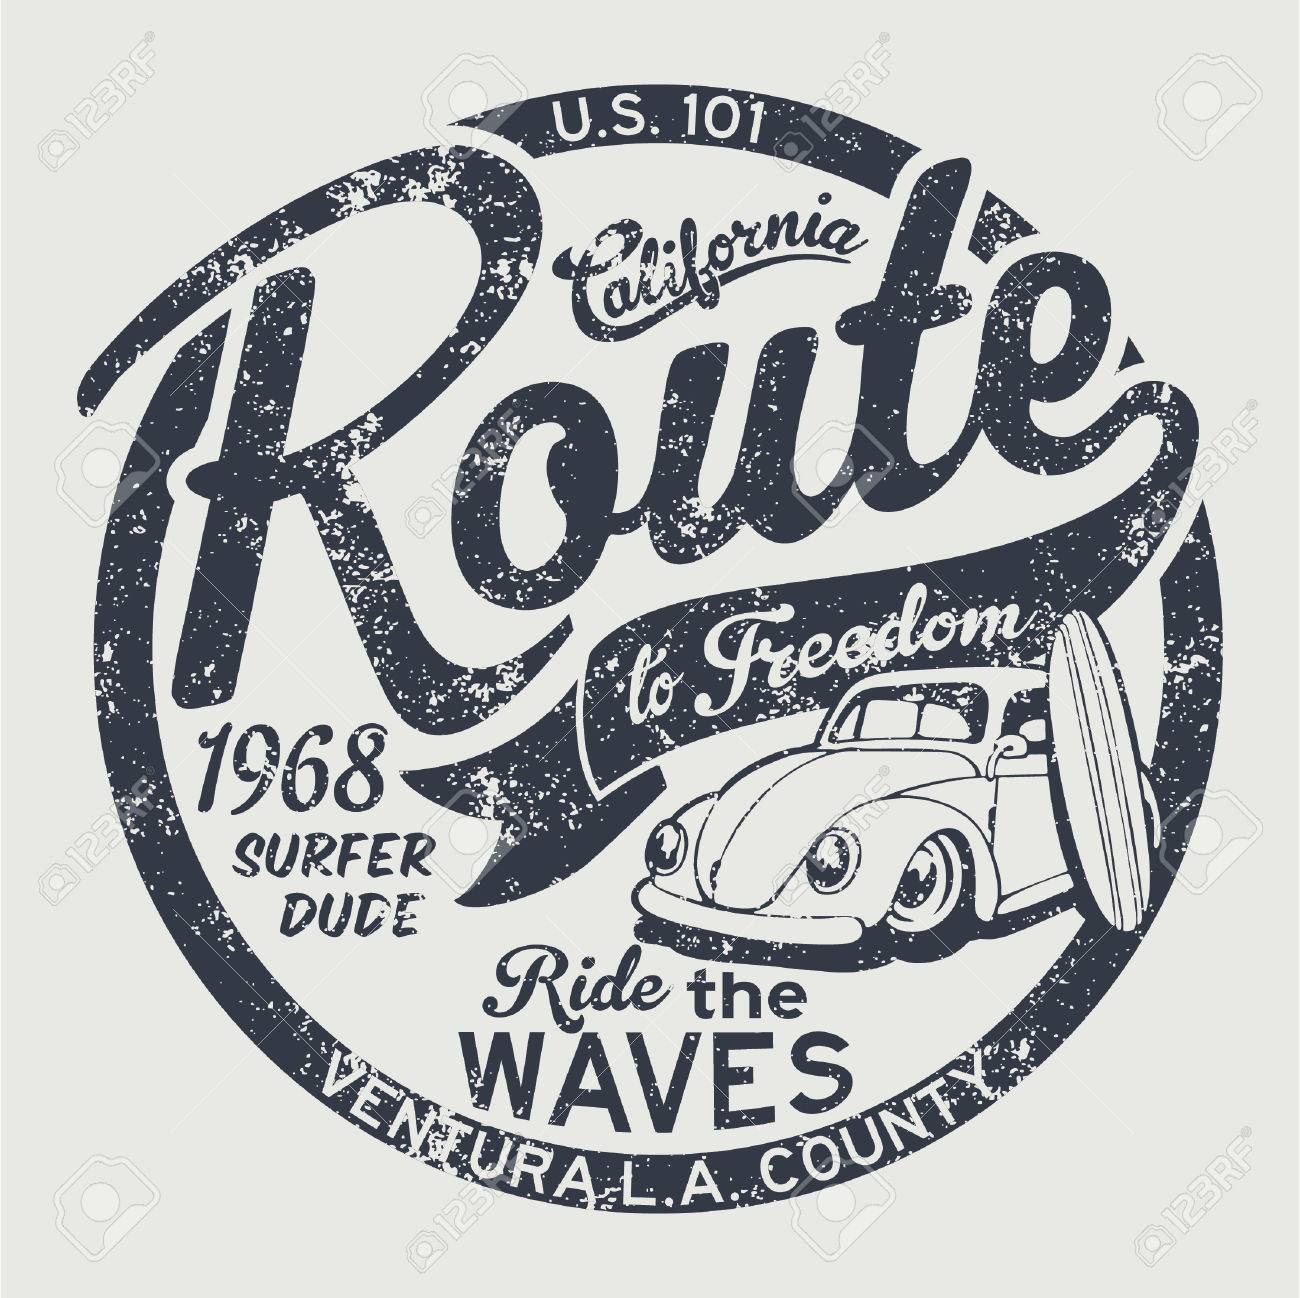 Route to freedom vintage surfing artwork for children wear grunge effect in separate layer - 55075157